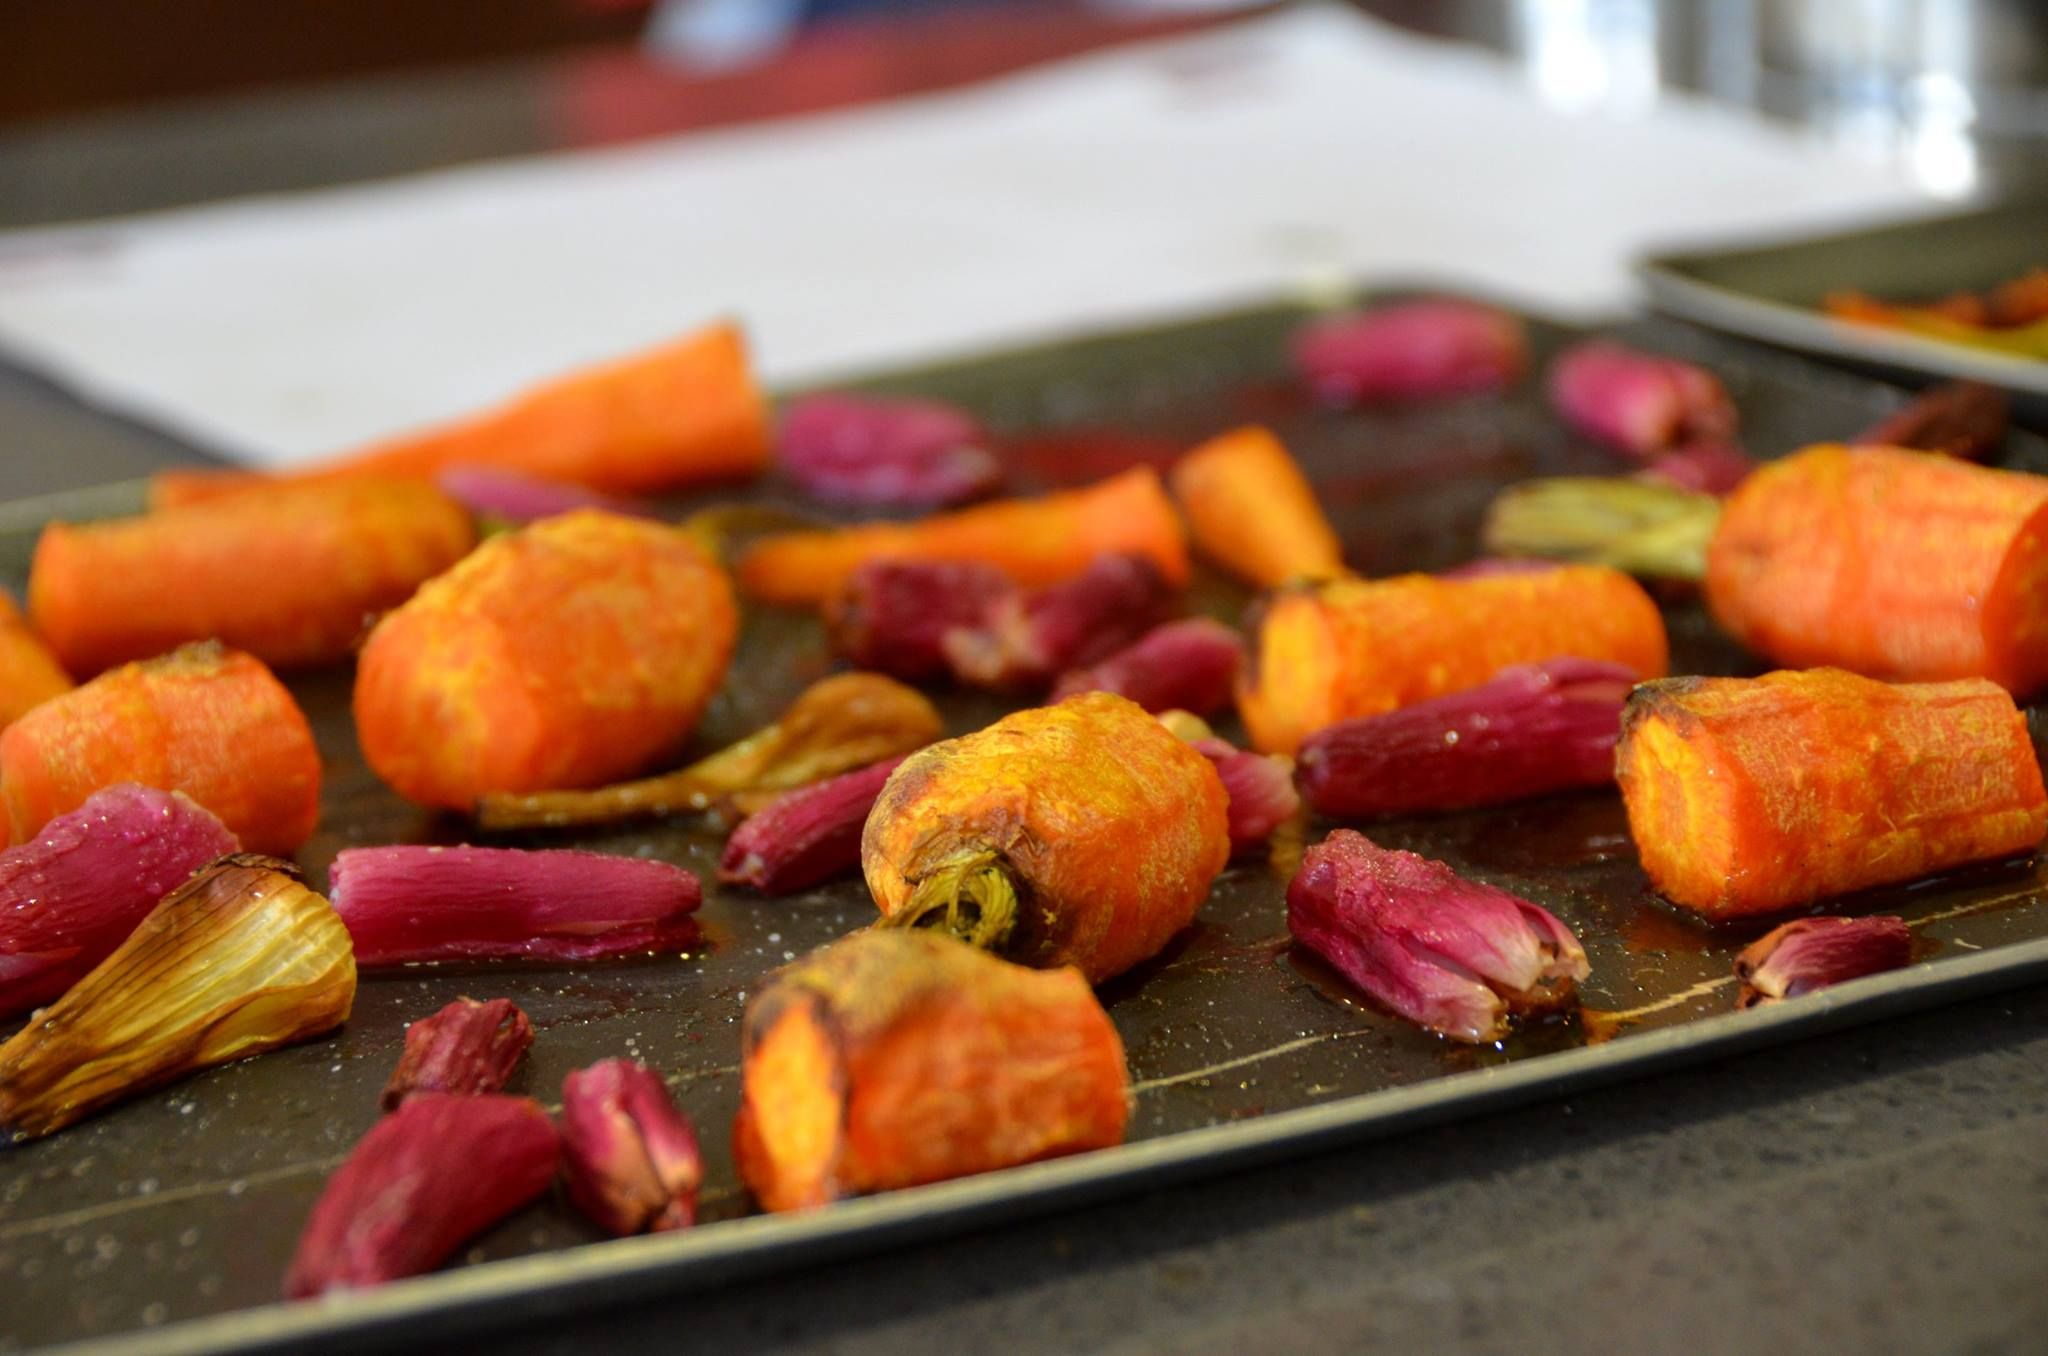 Roasted Carrots and Radishes Market Cooking Class La